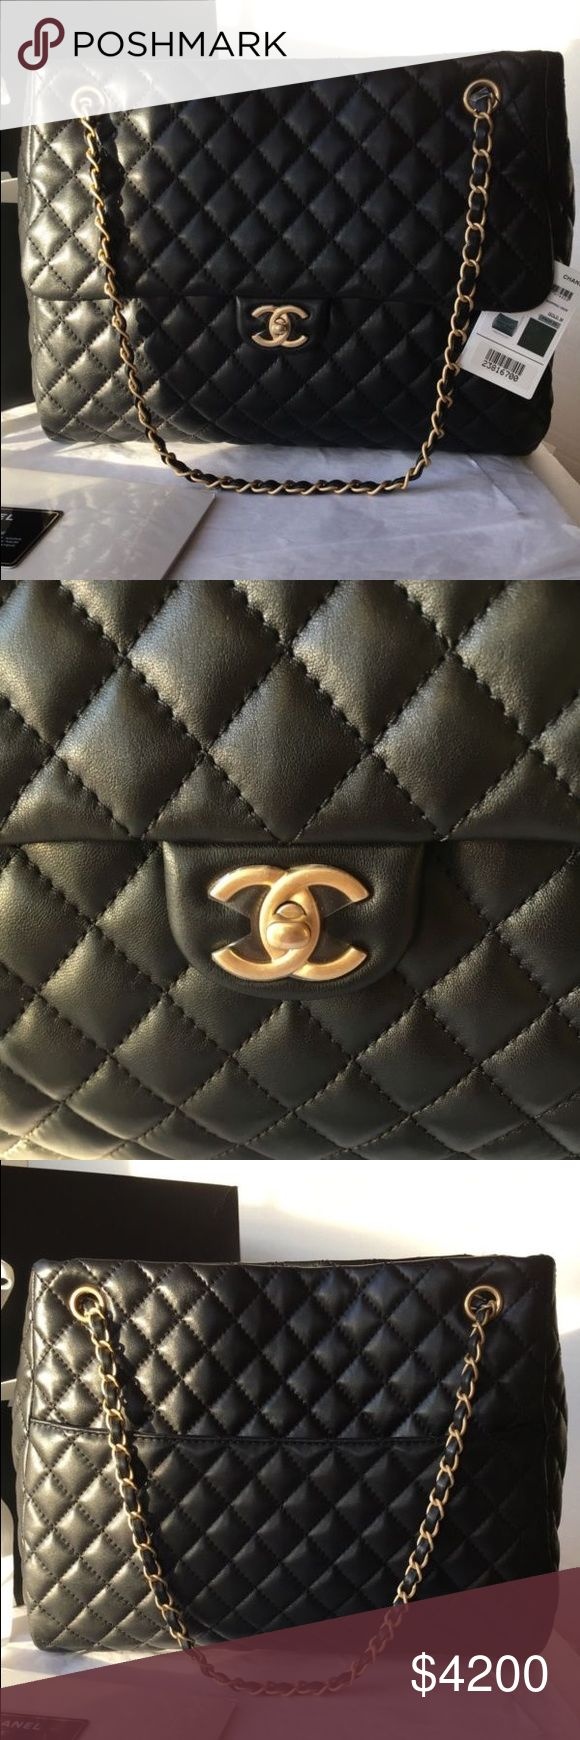 Chanel Classic Jumbo Maxi Flap Lambskin Tote Bag Brand New 100% Authentic Chanel Classic CC Fluffy Jumbo Maxi Flap Bag GST Shopper Tote Lambskin CHANEL Bags Totes